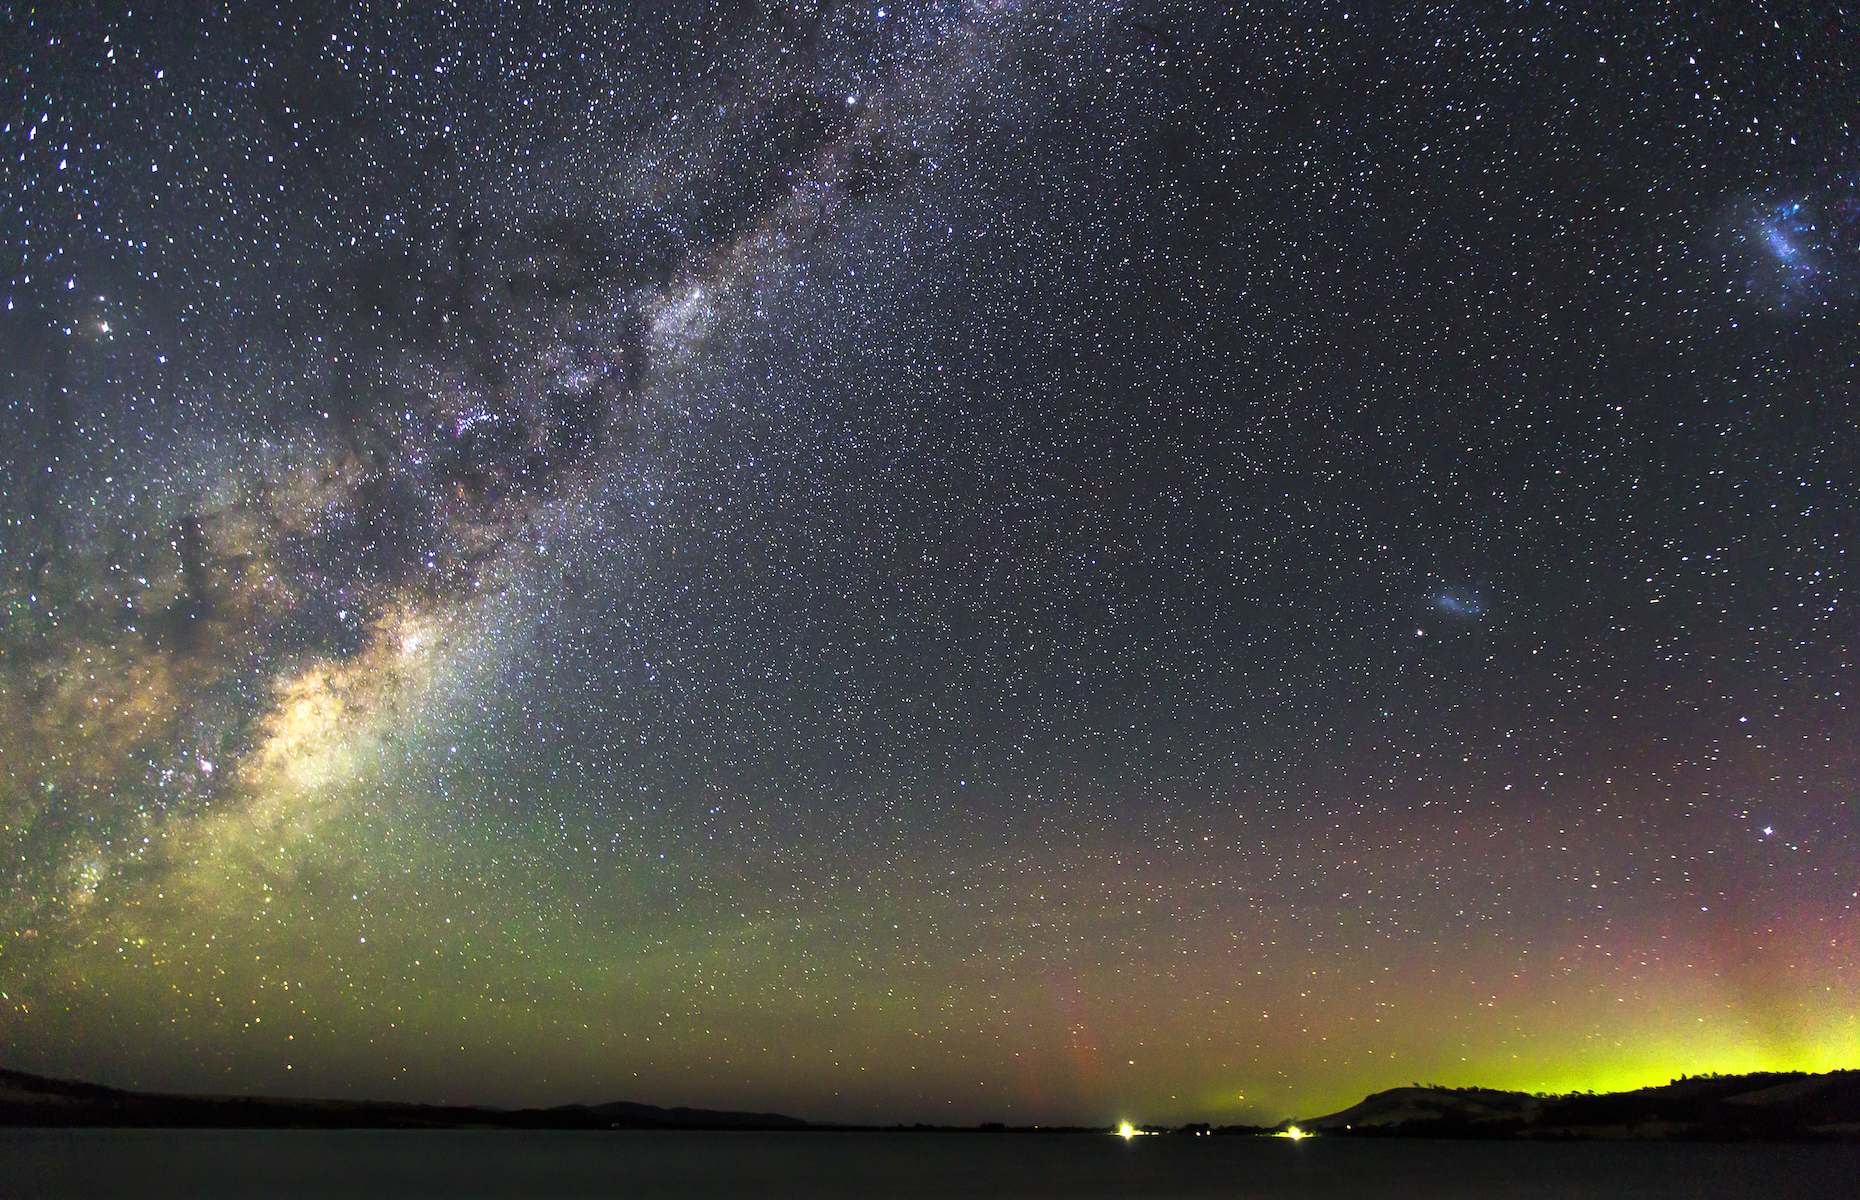 Slide 19 of 21: The southern lights shine brightly over Cremorne in Tasmania, Australia's southernmost state where you can catch this astounding sight year-round! Winter (meaning June through August) with its longer nights and moderate climate is the best time of year to try your luck!